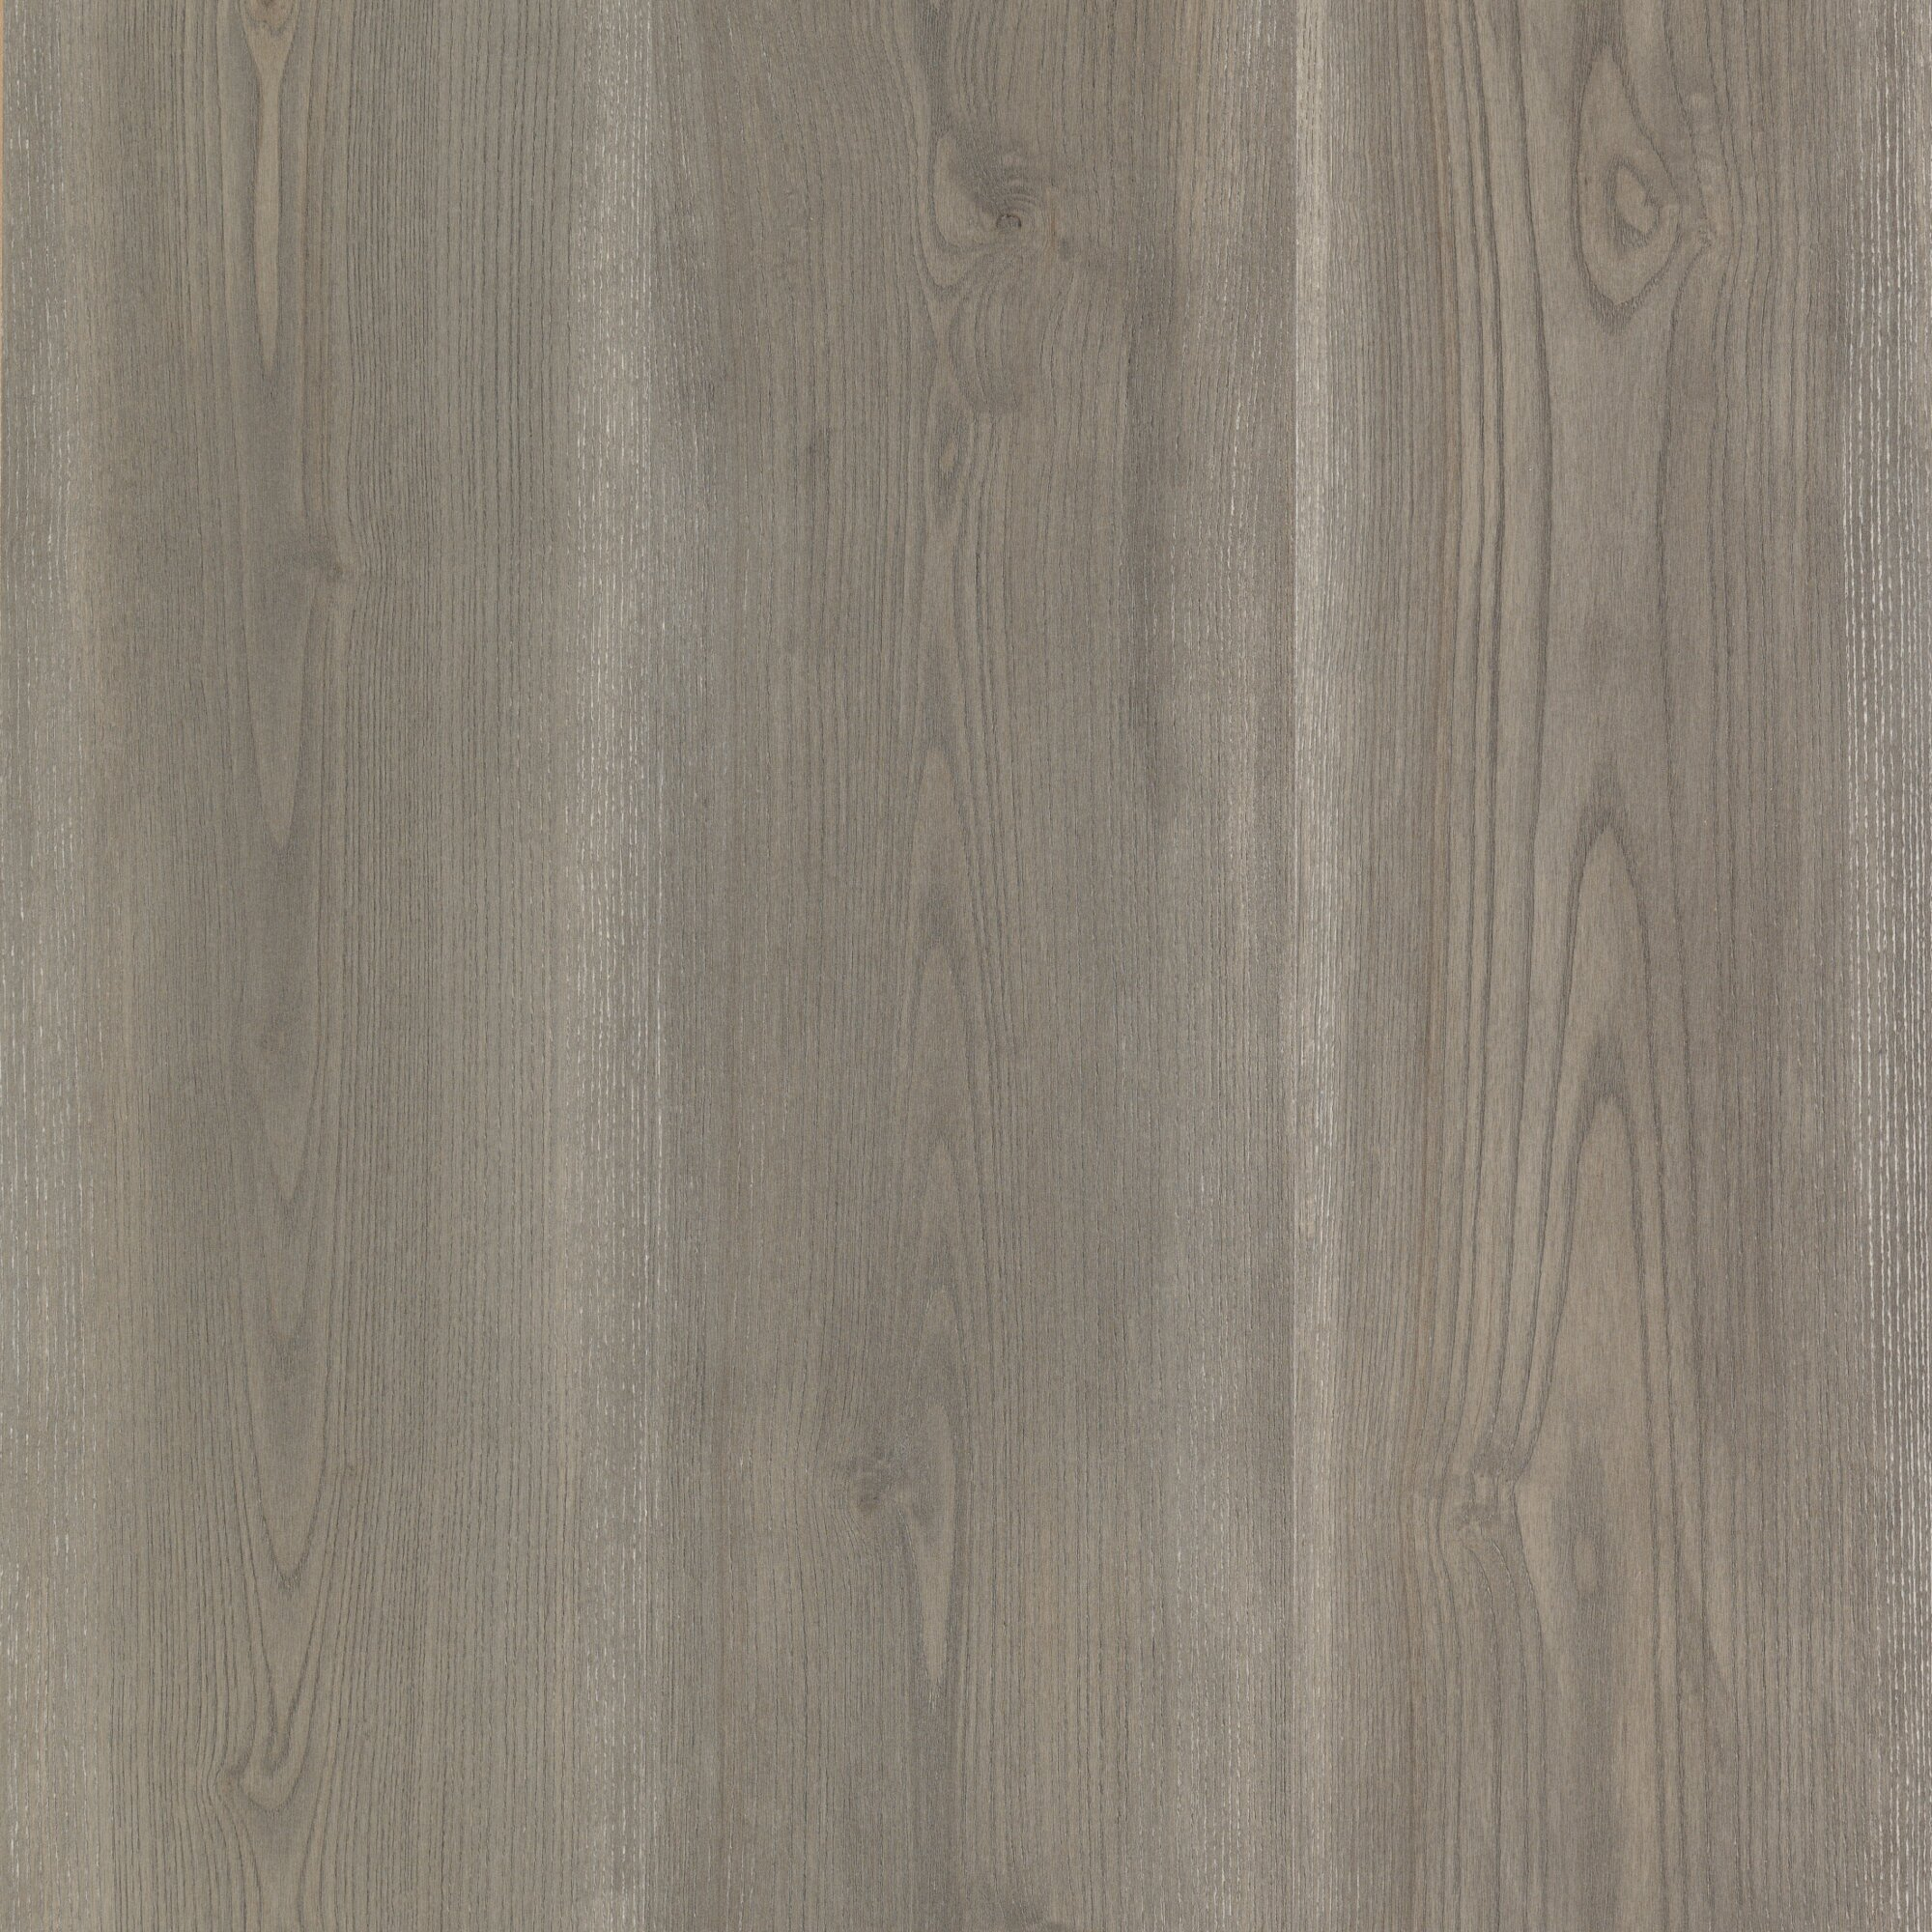 Mohawk flooring 7 5 x 47 25 x 8mm oak laminate in soft graphite